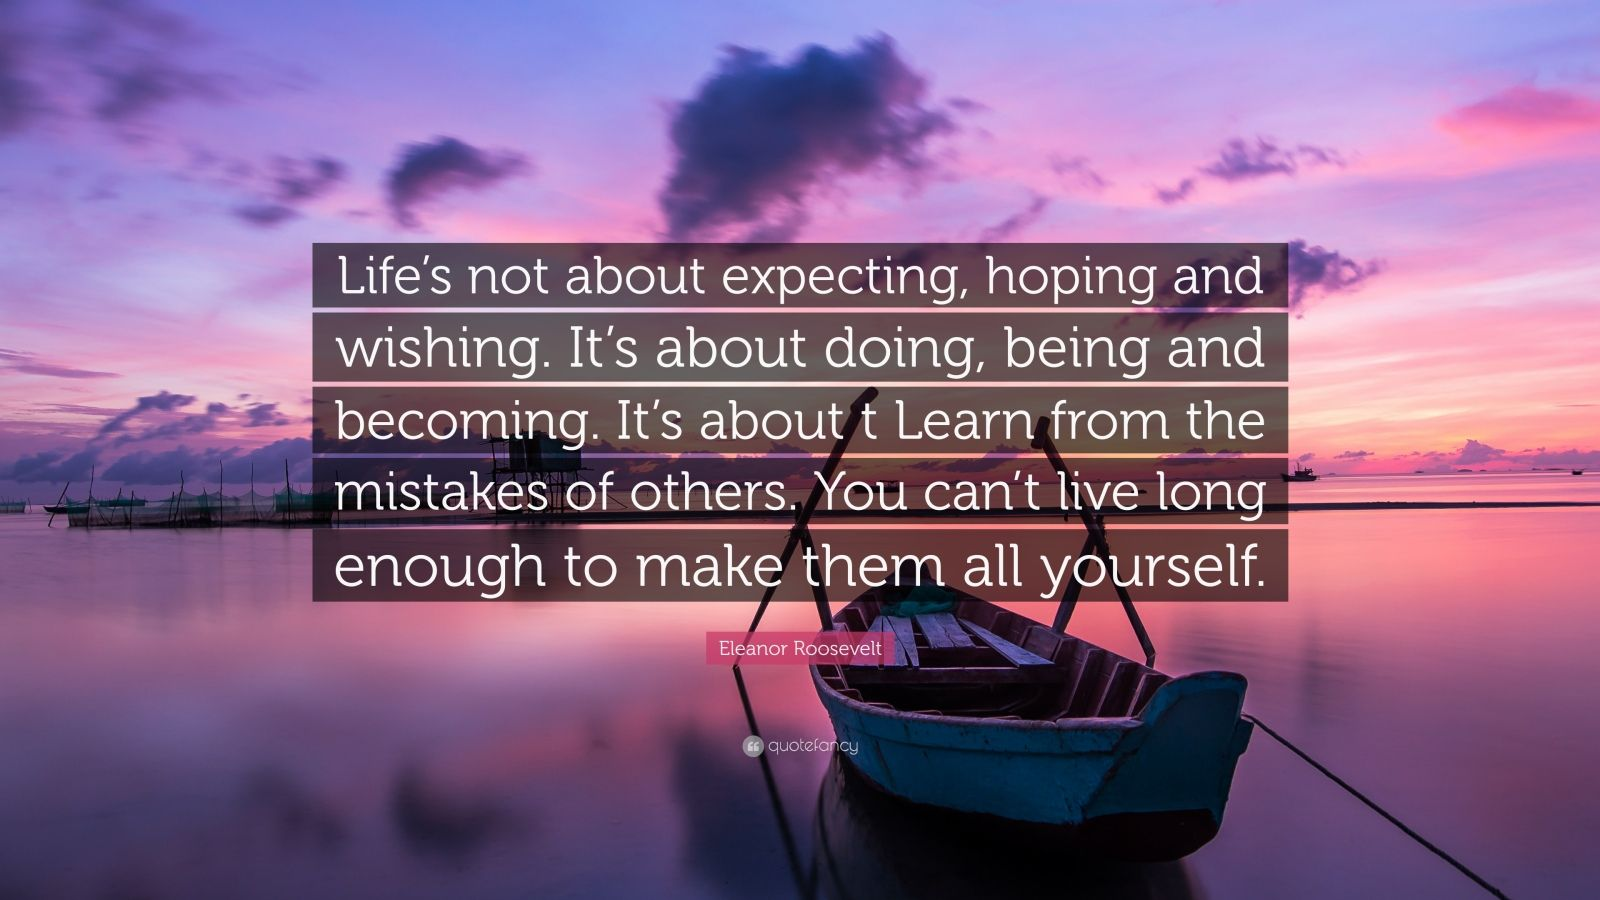 """Eleanor Roosevelt Quote: """"Life's not about expecting, hoping and wishing. It's about doing, being and becoming. It's about t Learn from the mistakes of others. You can't live long enough to make them all yourself."""""""